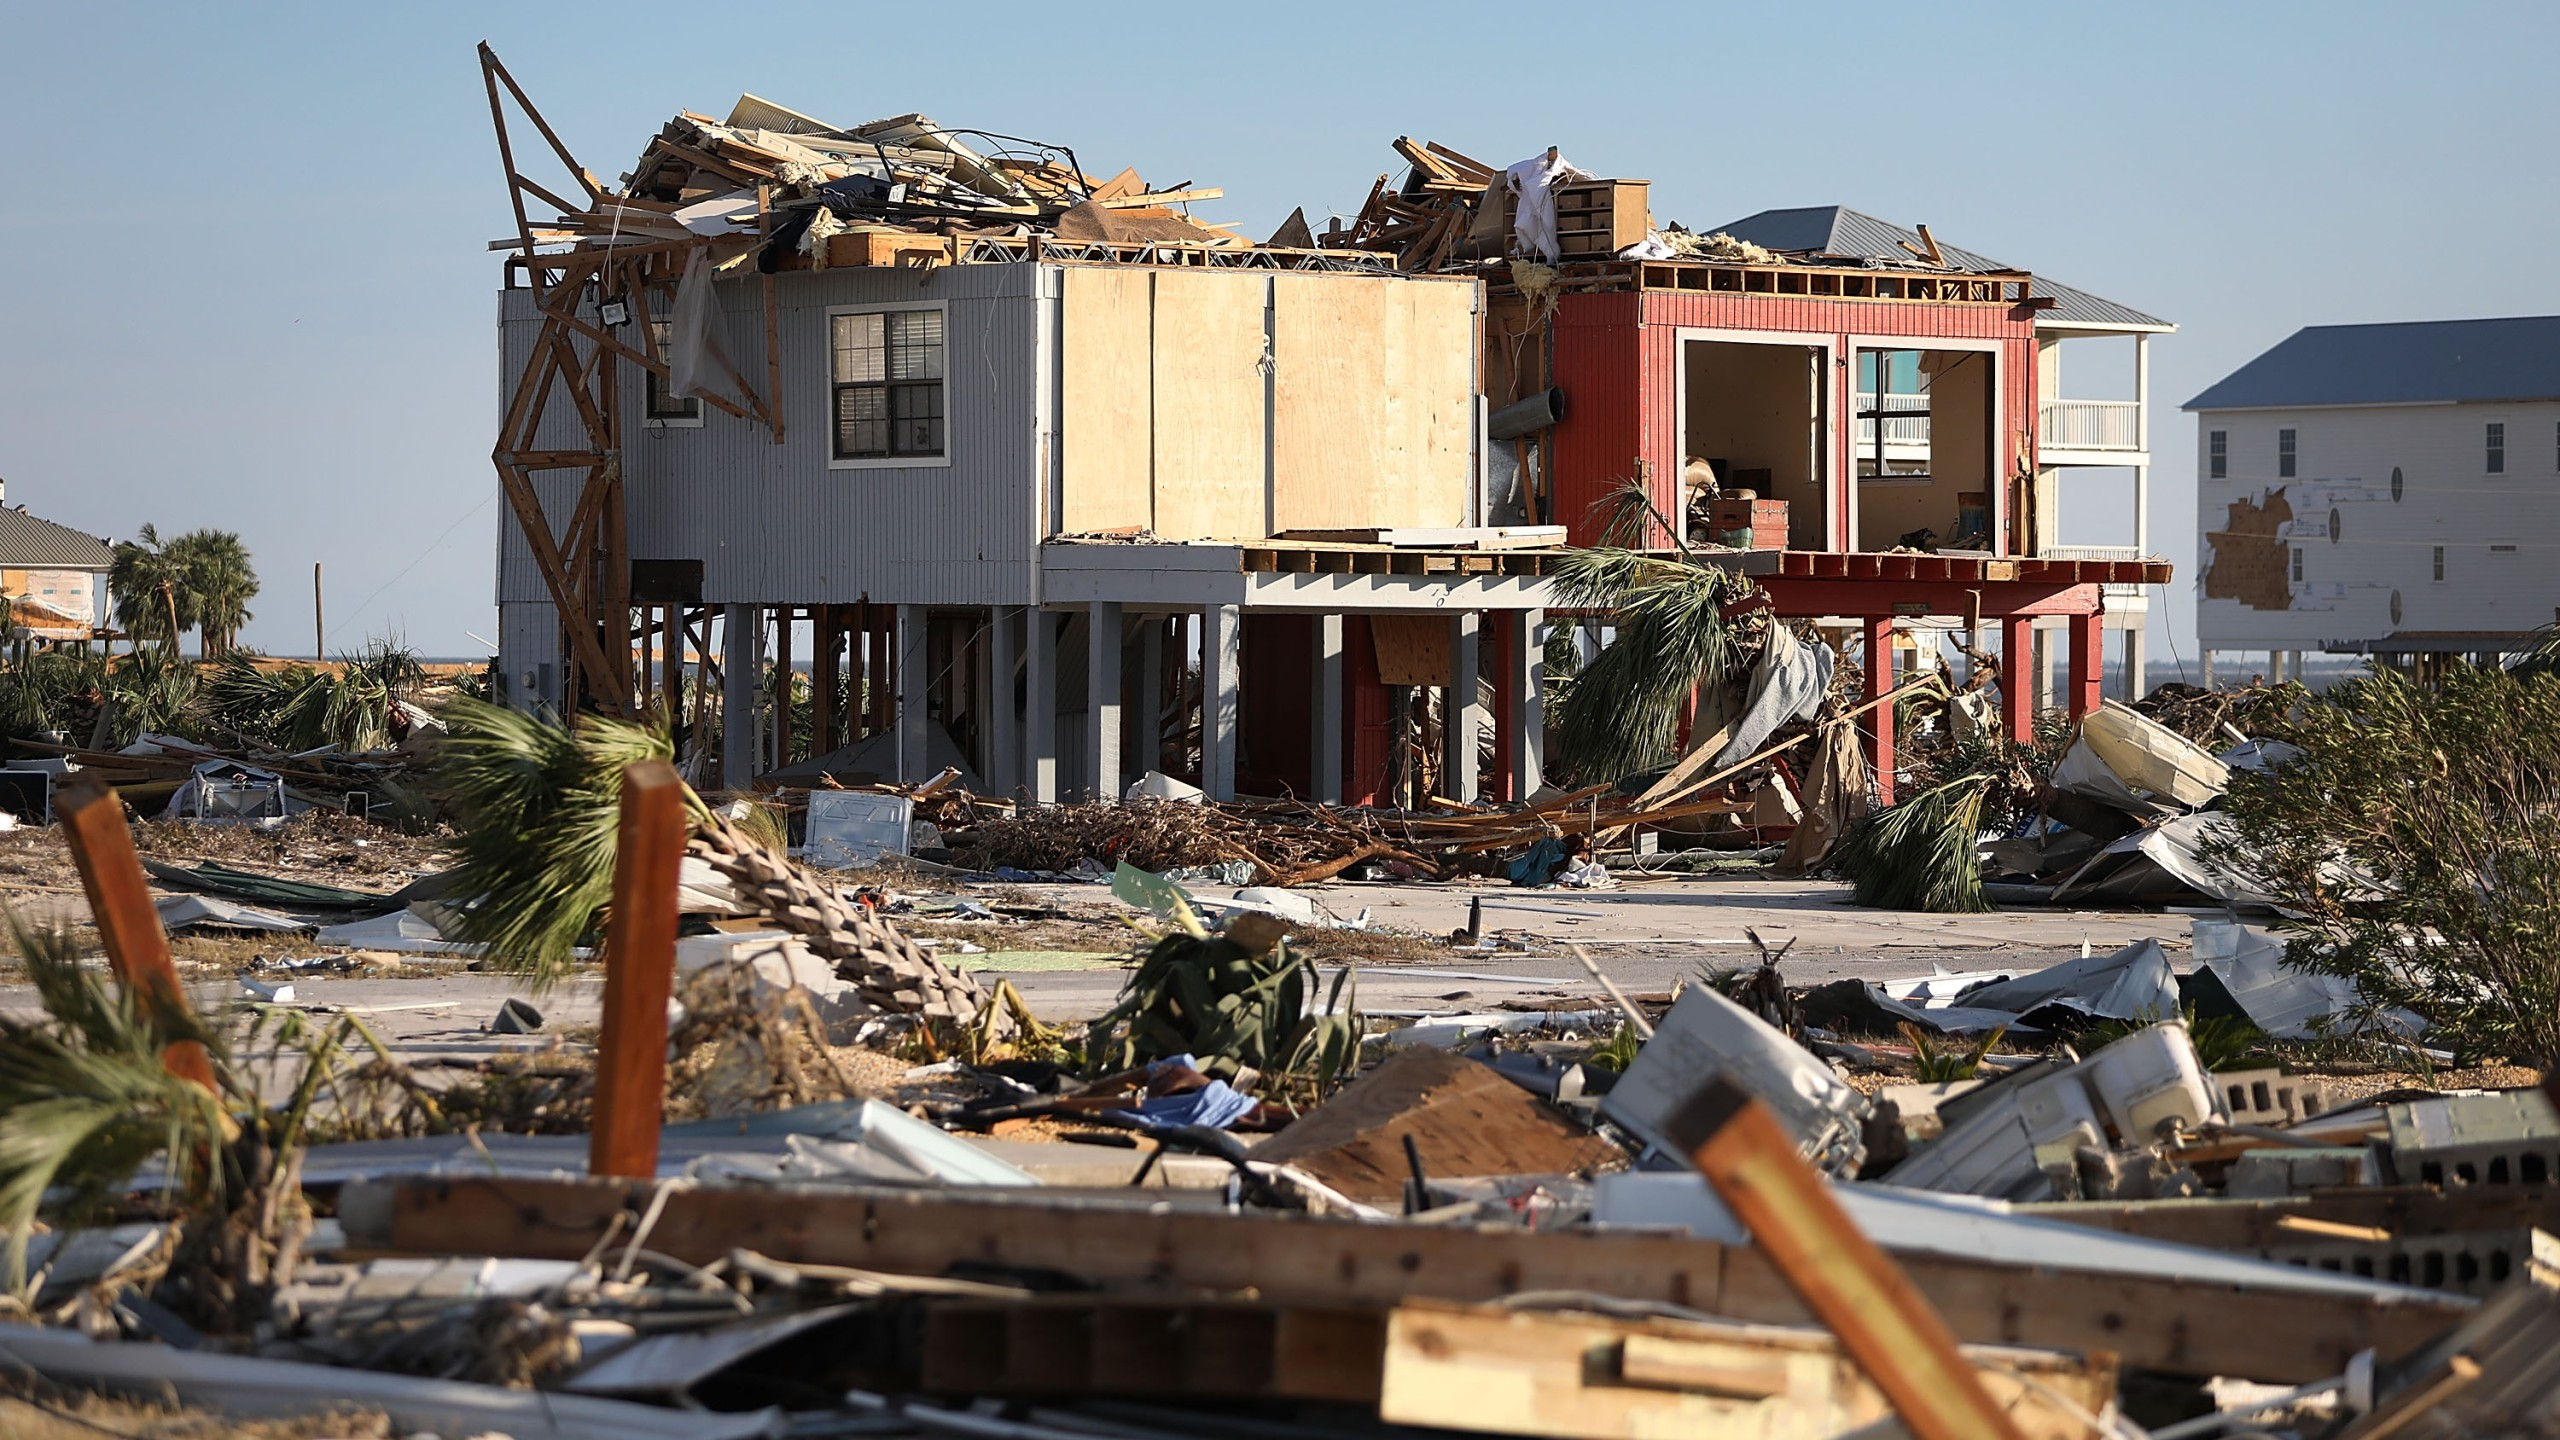 Damaged homes are seen after hurricane Michael passed through the area on October 11, 2018 in Mexico Beach, Florida. (Credit: Joe Raedle/Getty Images)